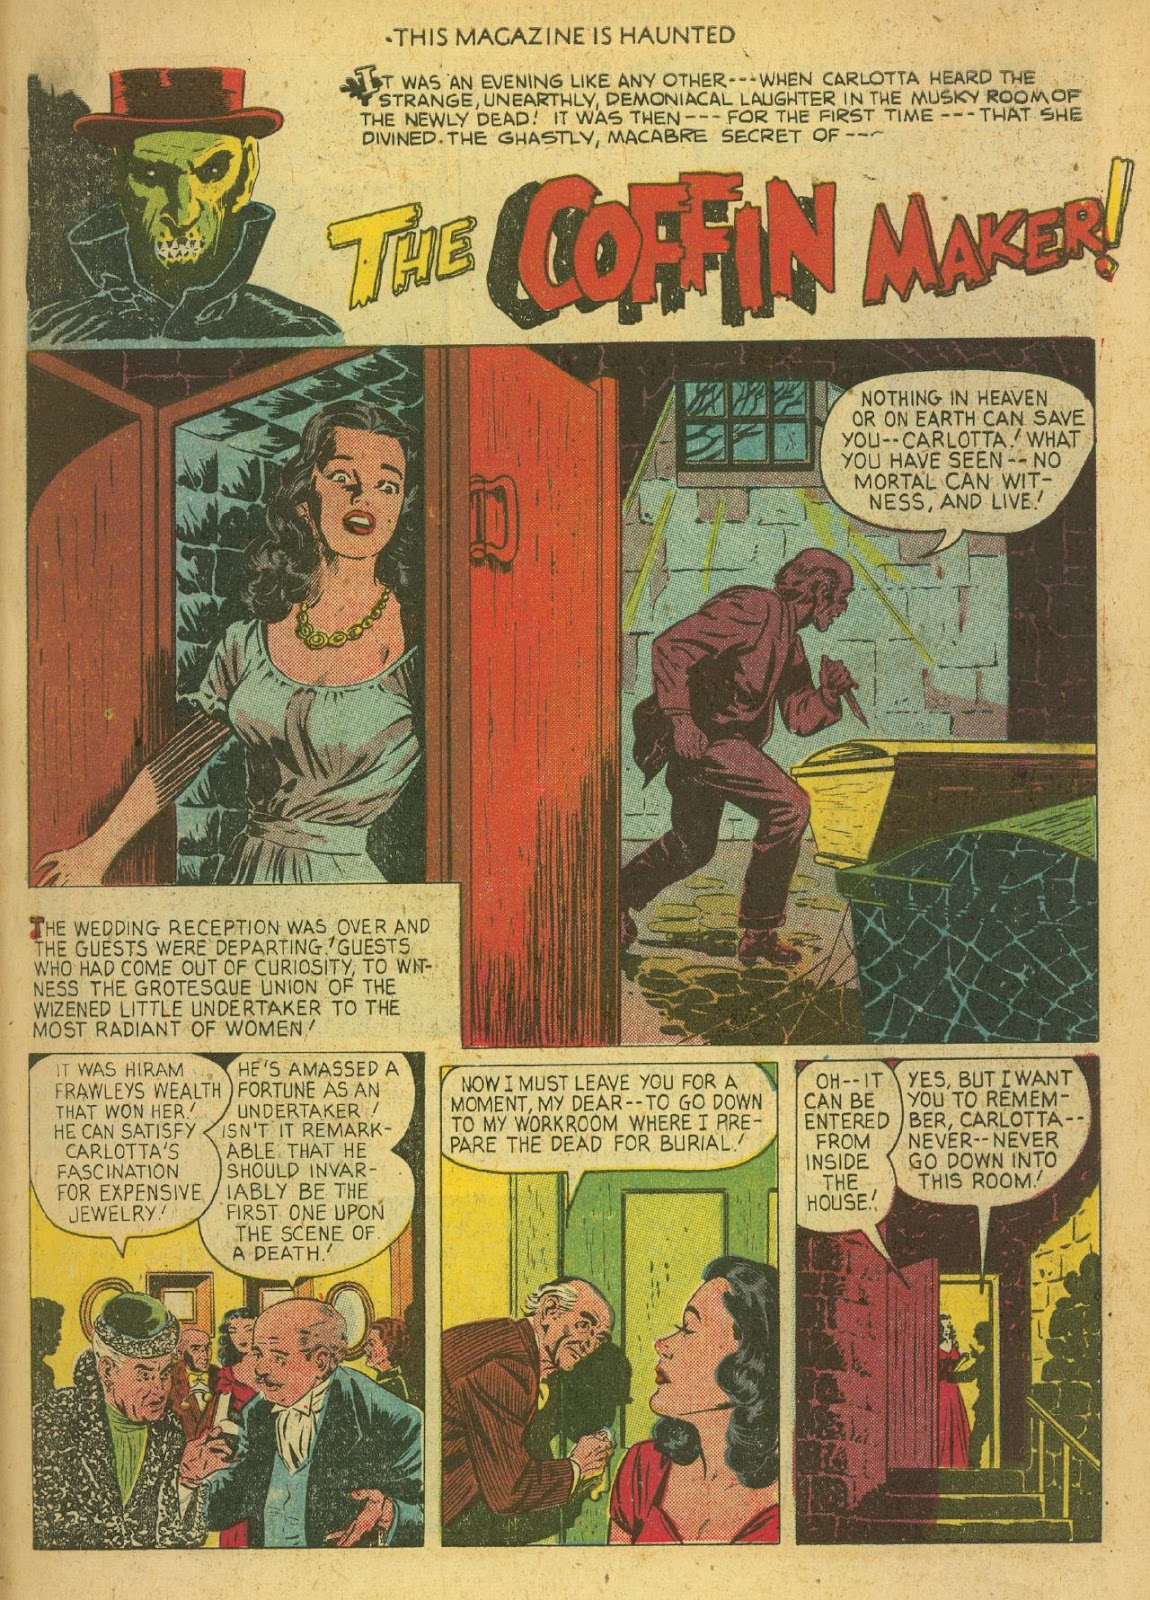 Read online This Magazine Is Haunted comic -  Issue #1 - 27